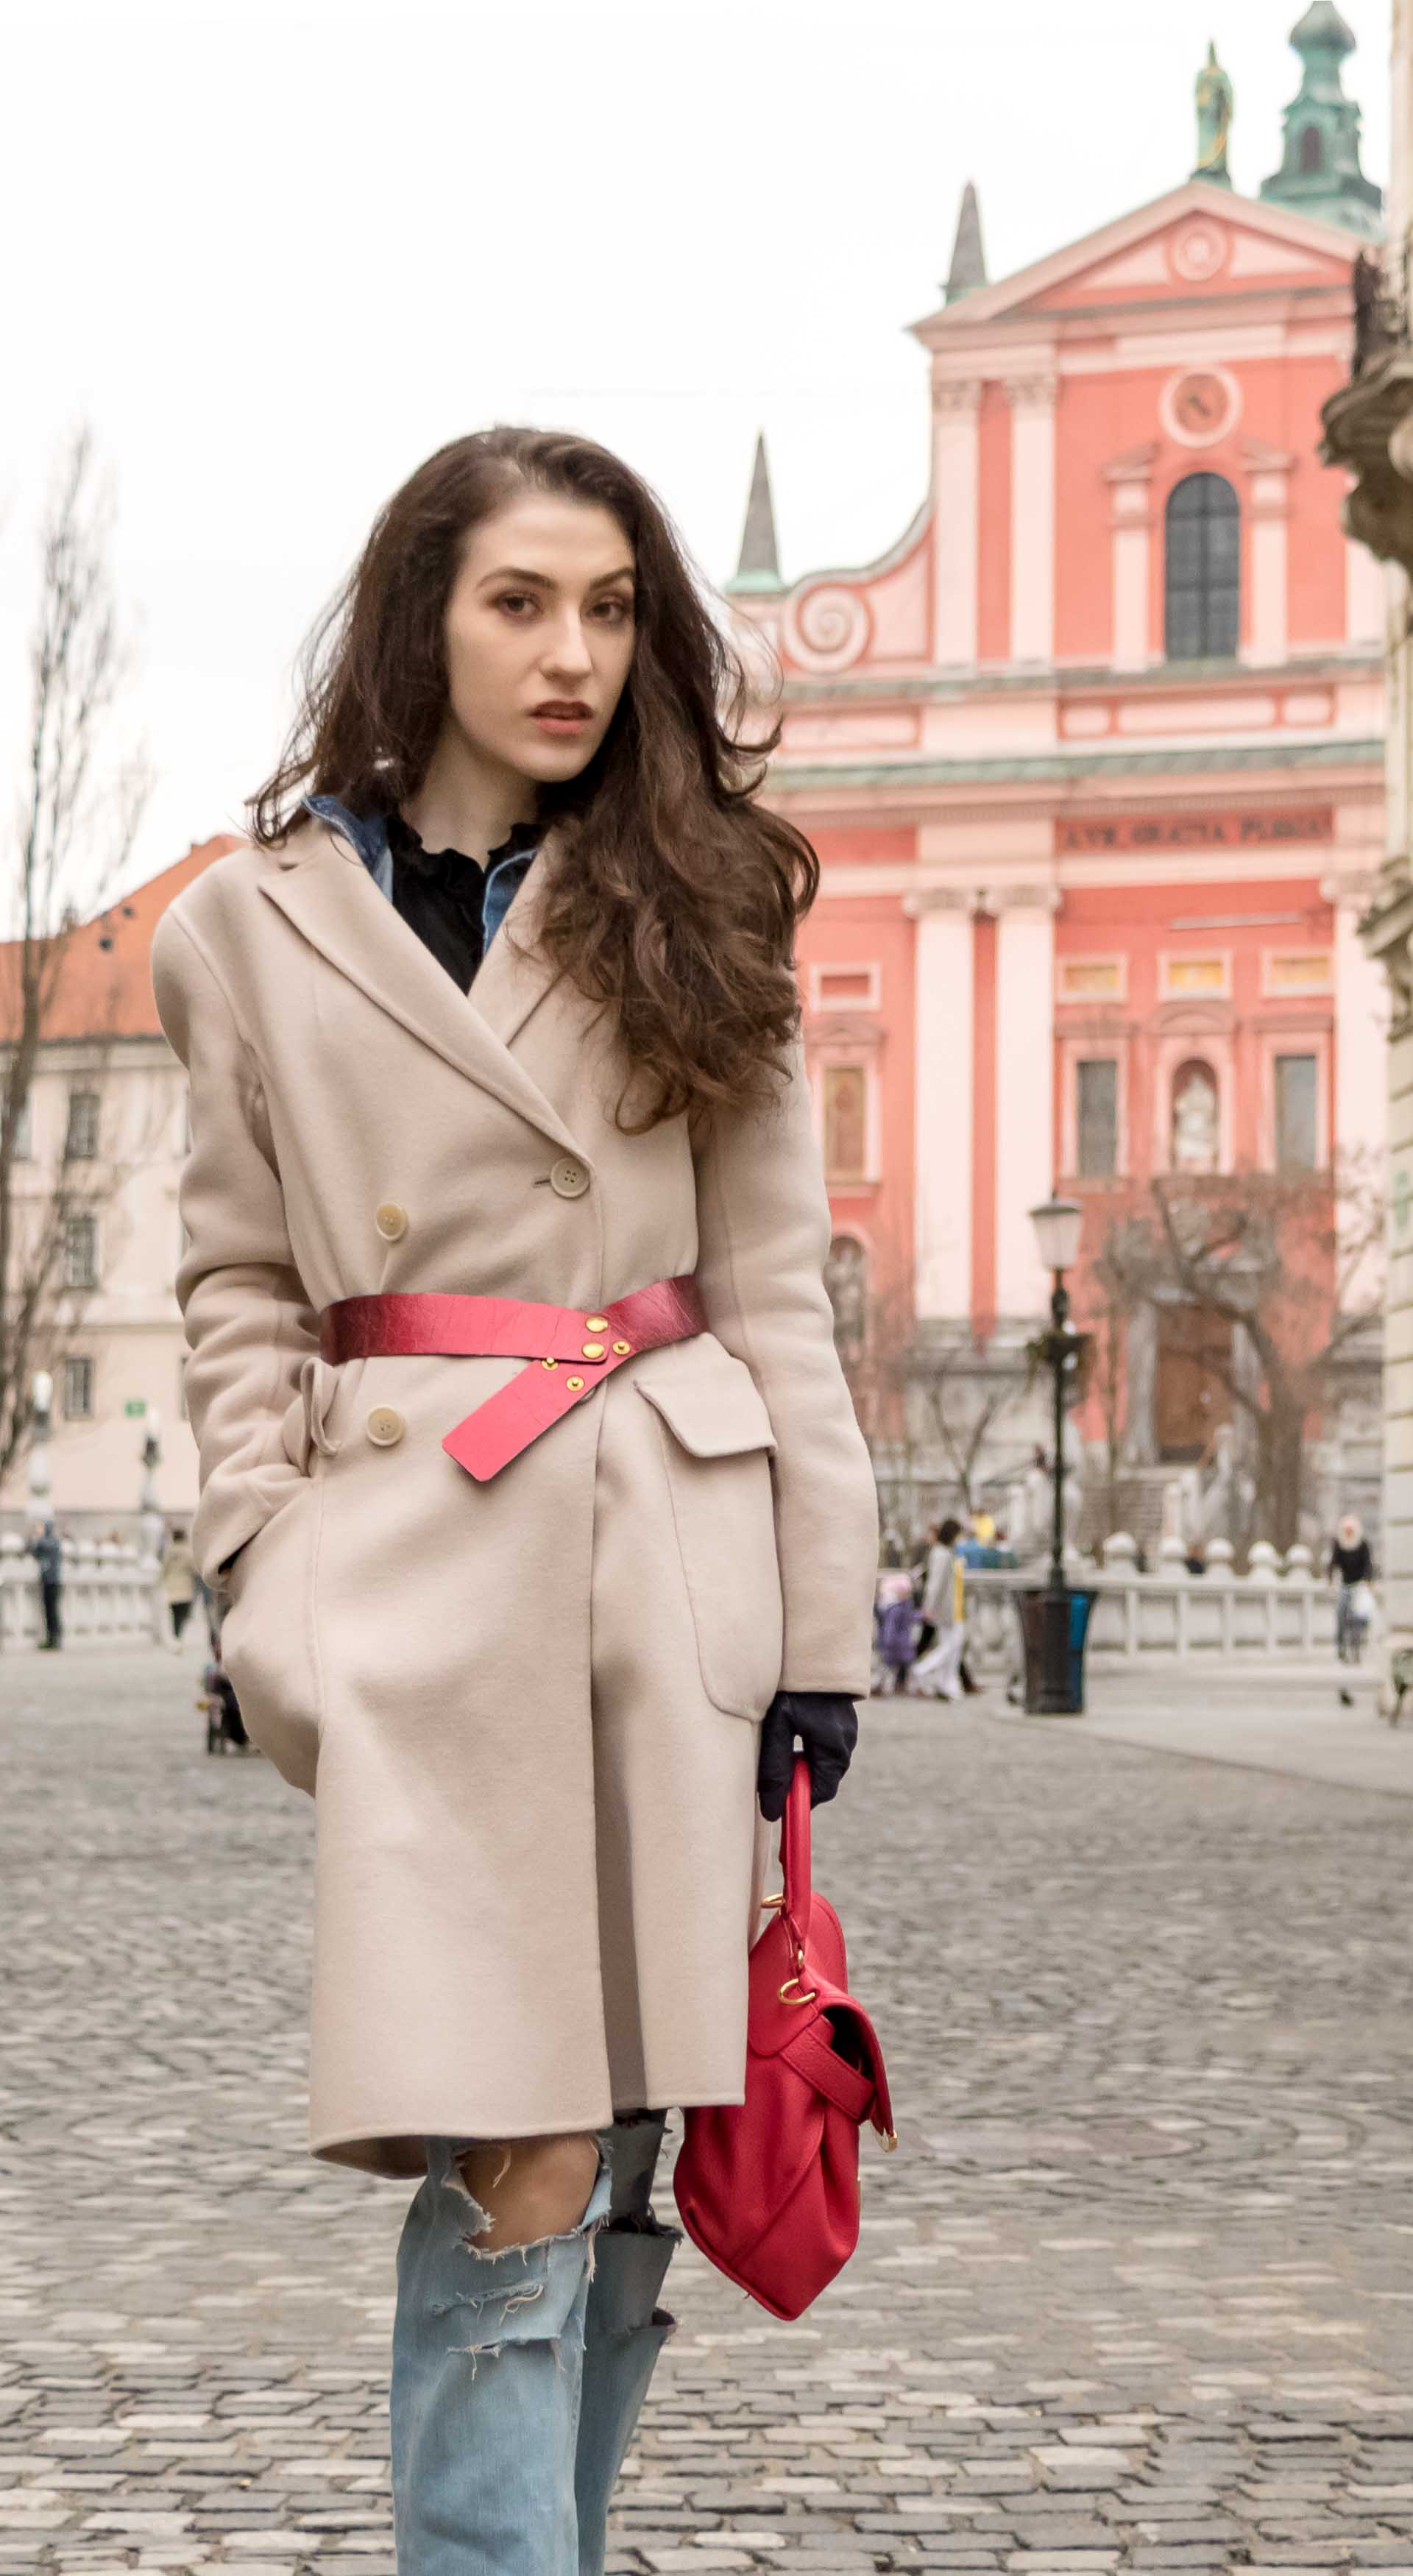 Fashion Blogger Veronika Lipar of Brunette from Wall Street wearing ripped blue Levi's jeans, off-white double breasted Weekend Maxmara coat, red dangling belt, See by Chloe pink top handle bag, blue leather gloves walking down the street in Ljubljana